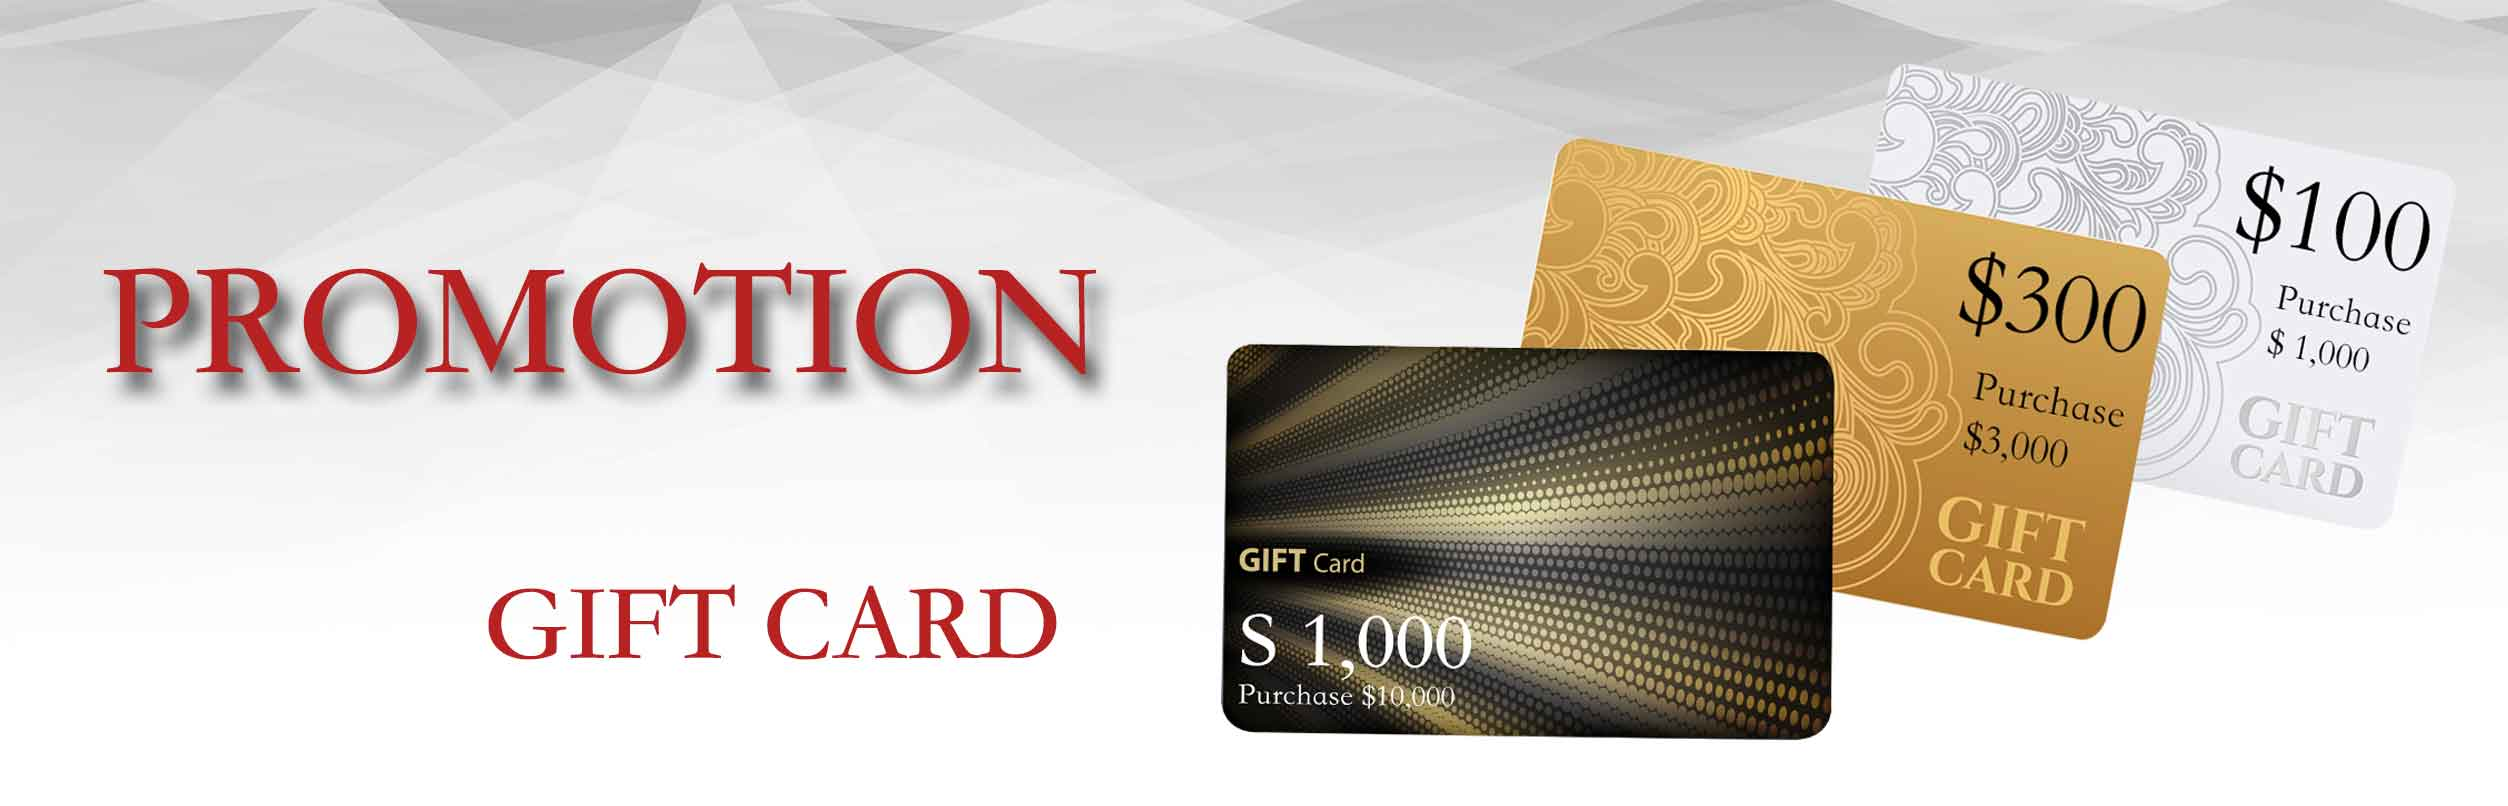 giftcard_banner_resize